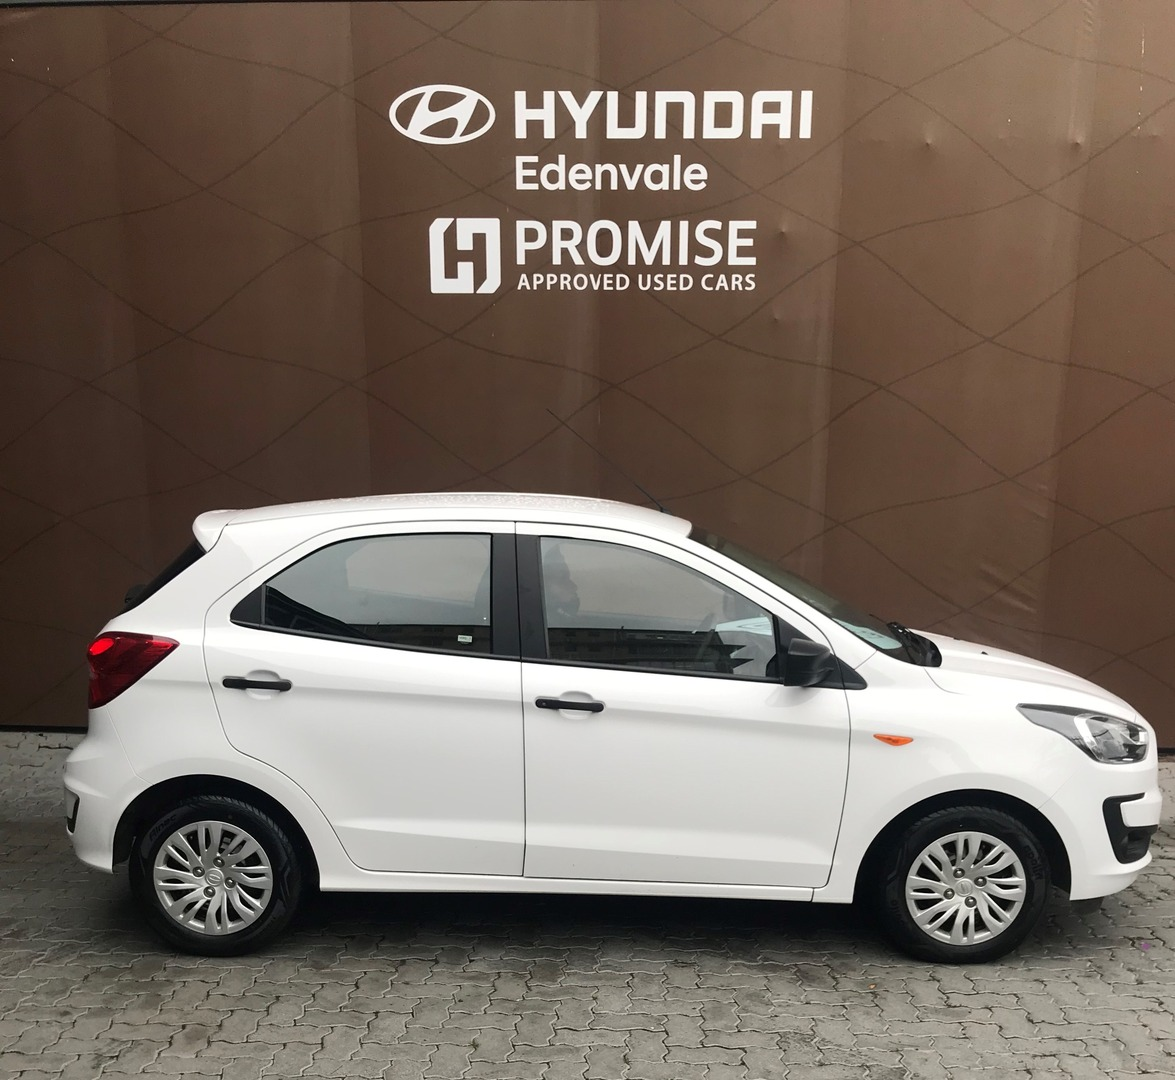 FORD 1.5Ti VCT AMBIENTE (5DR) Edenvale 2332463